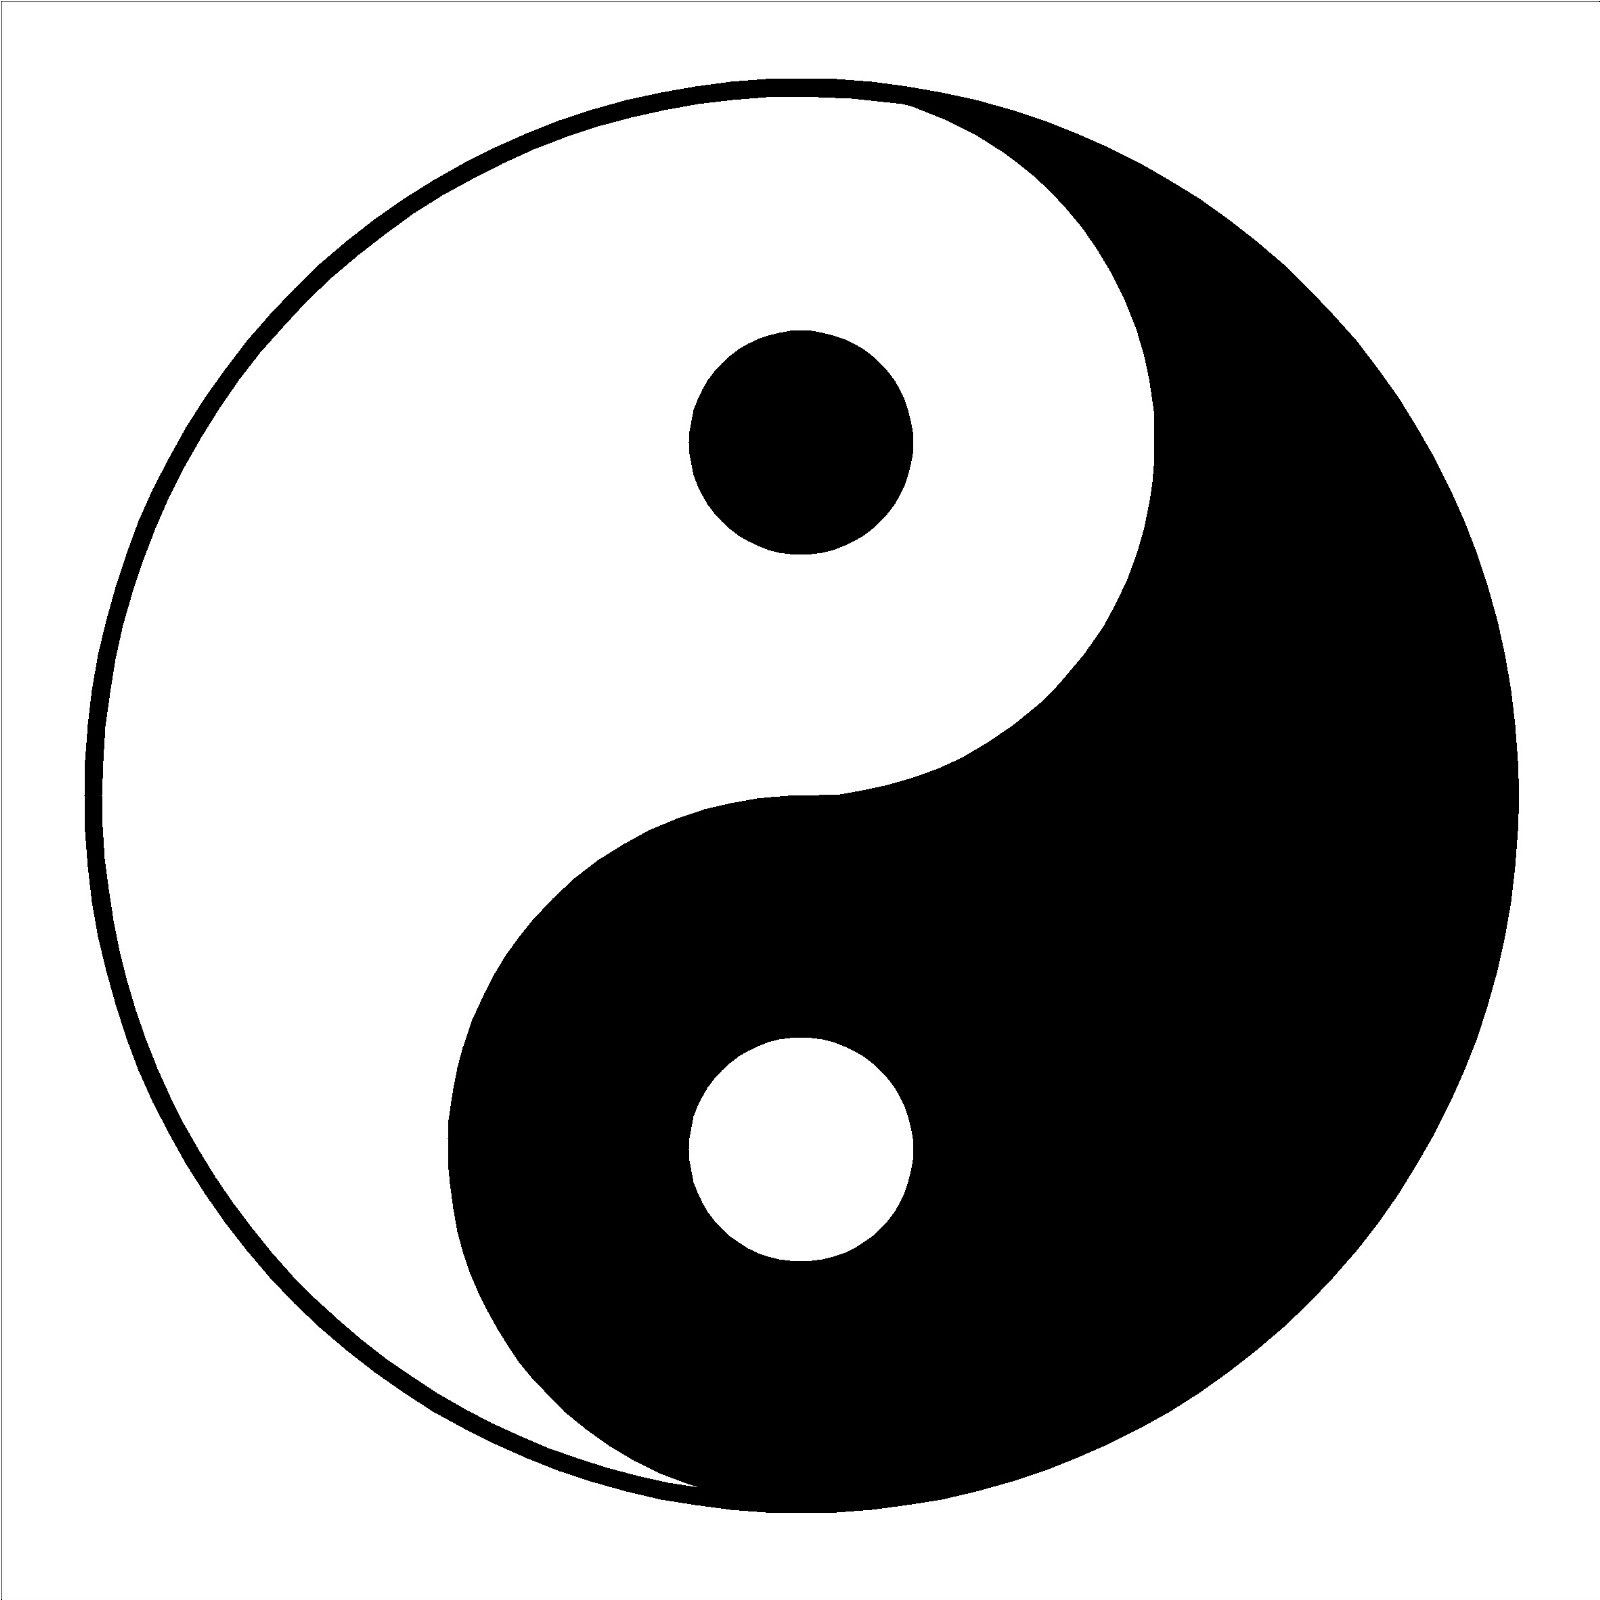 YING-YANG, DECAL, ART, YANG, ROOM, WALL